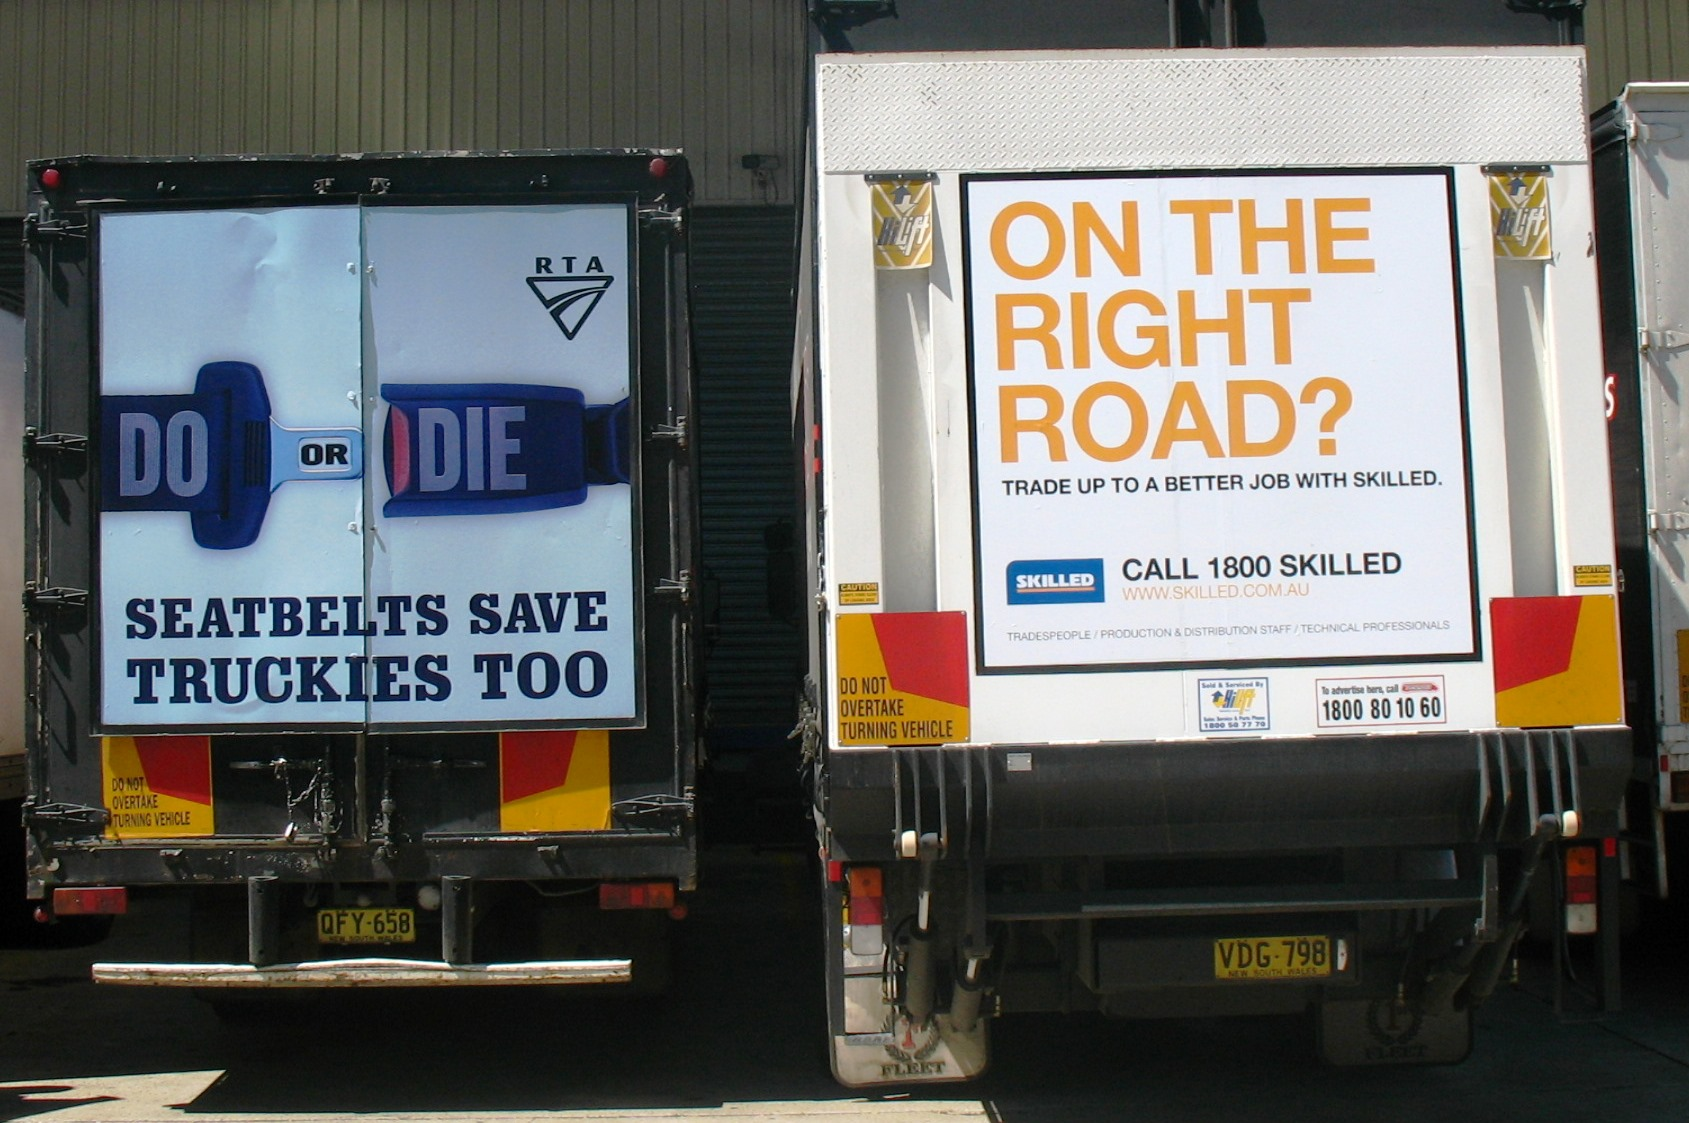 Truck advertising. Two TruckBacks one for RTA/RMS/TfNSW Seatbelts Save Truckies Too and another for Skilled On The Right Road. On First Fleet rigid vehicles. One with frame, one with taillift.